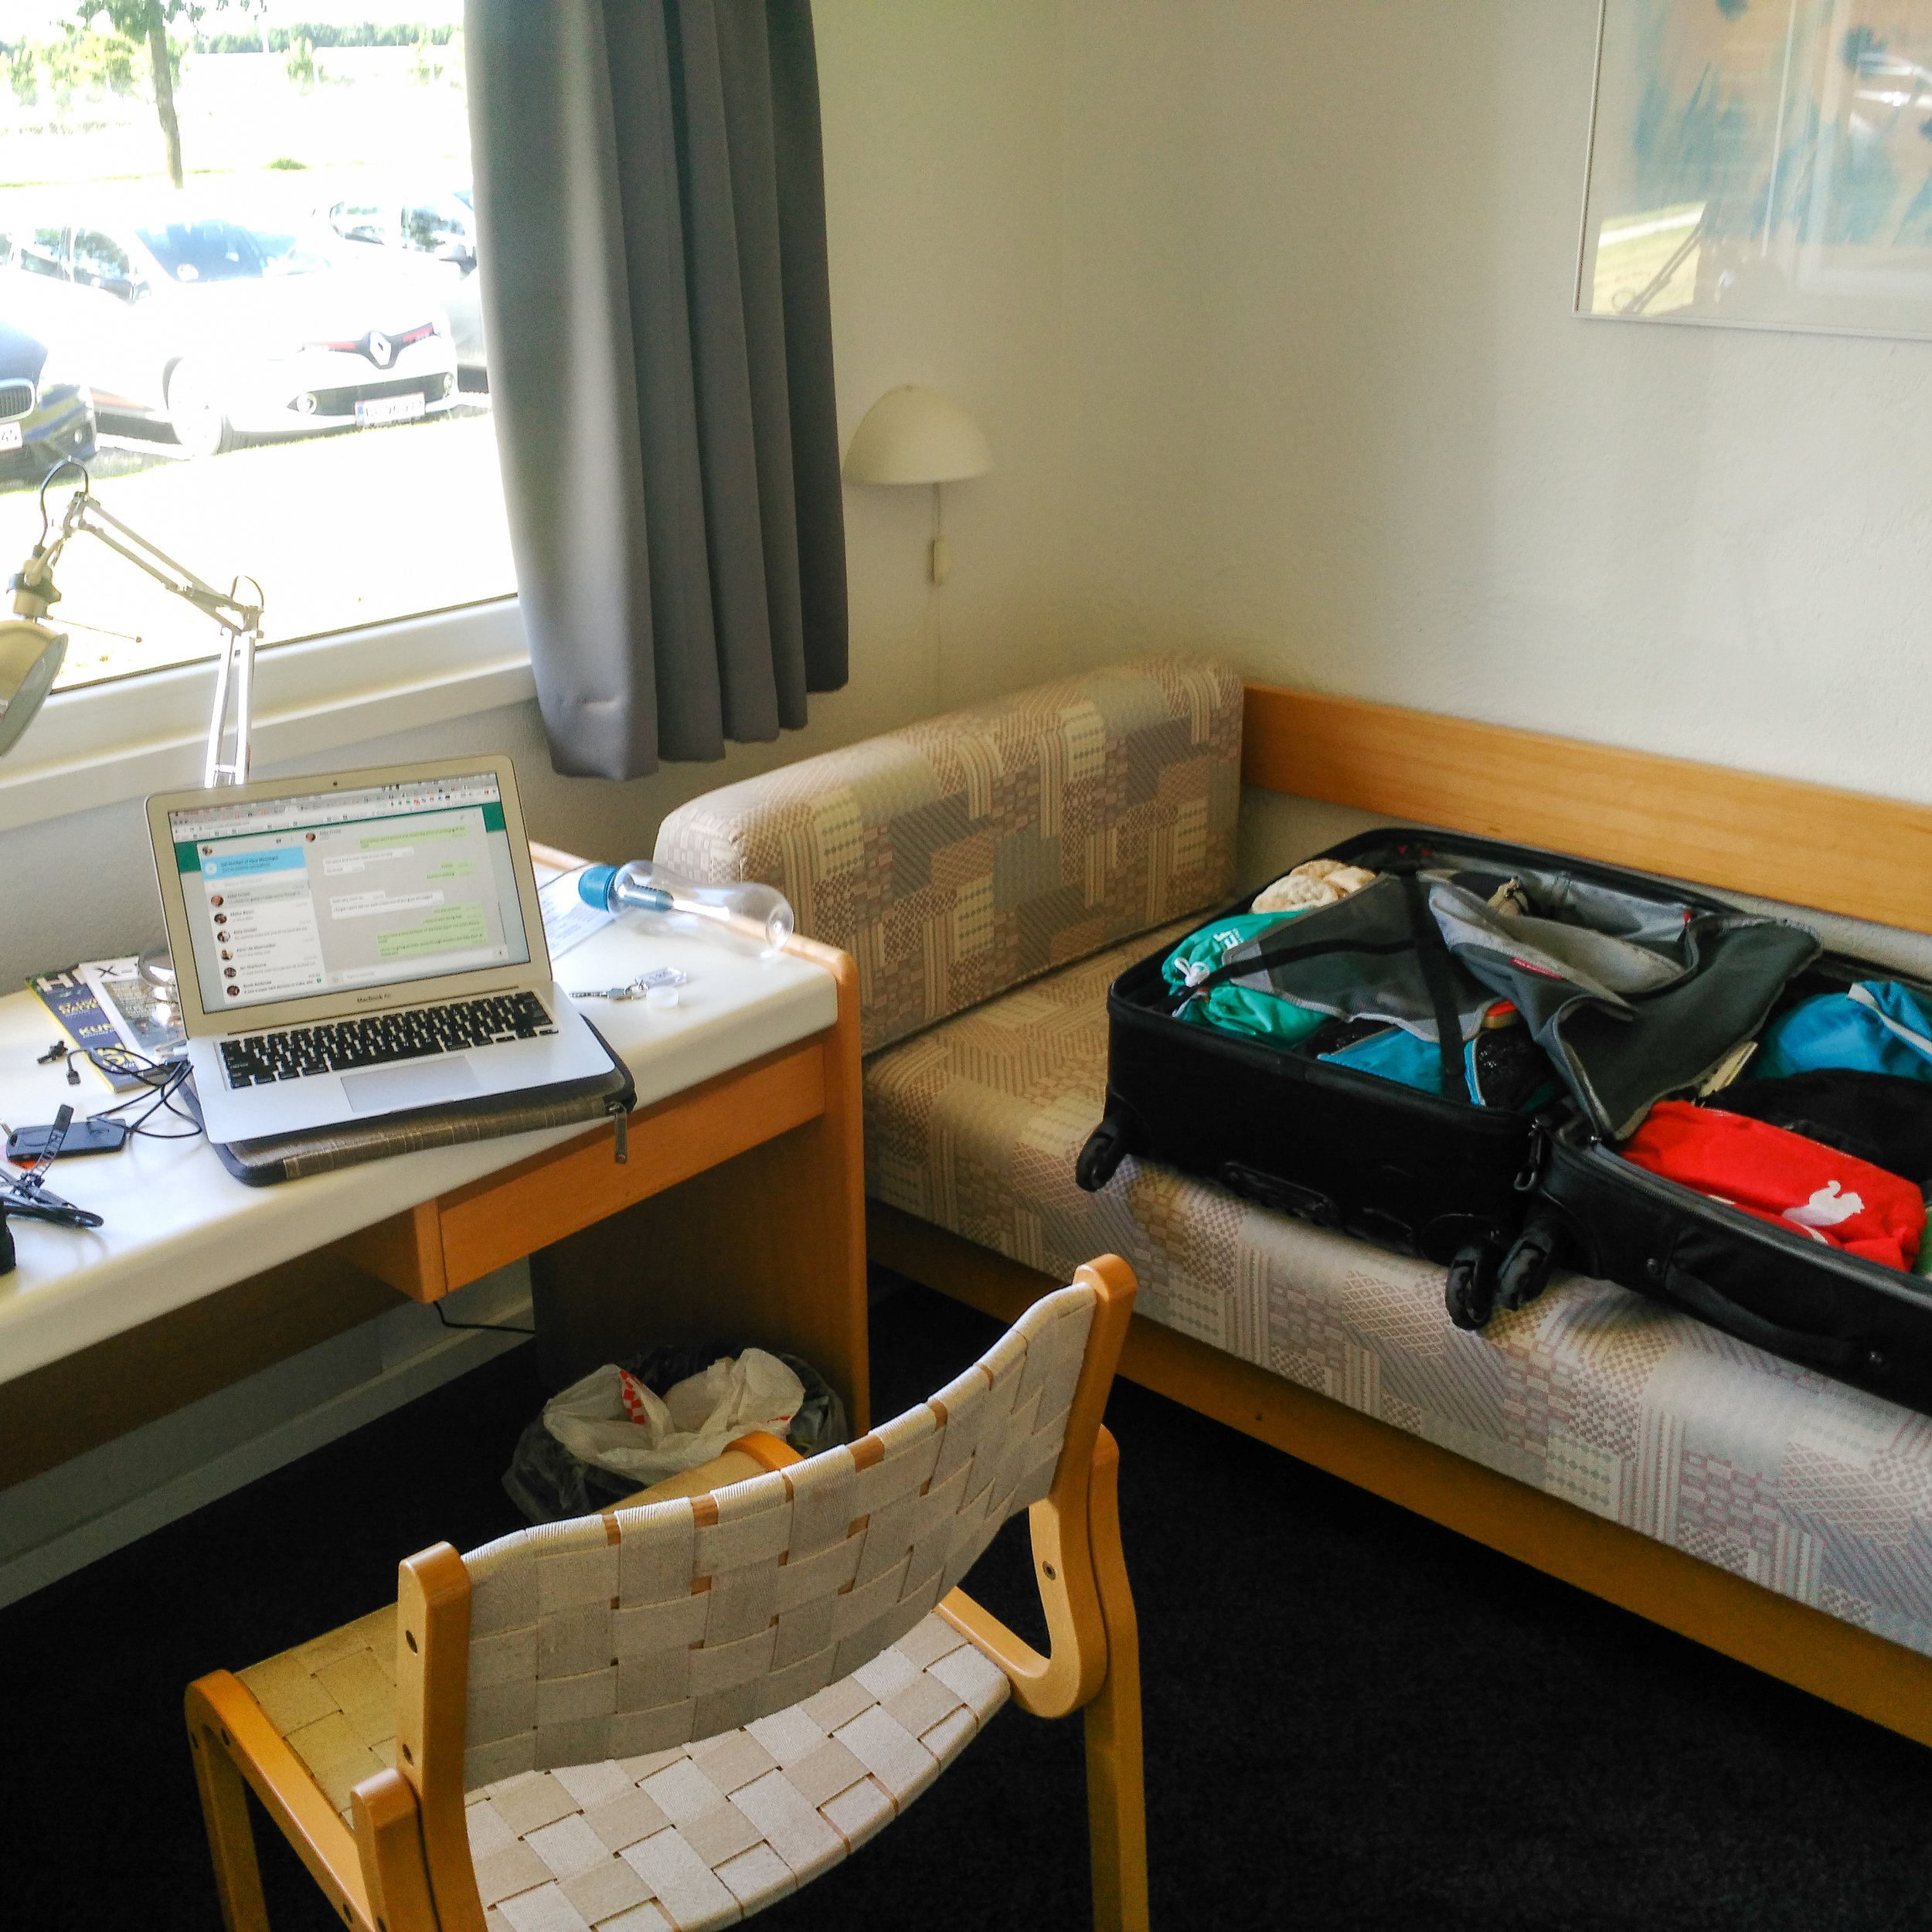 This looks more like my typical hotel rooms. They aren't usually super fancy, more barebones. Sometimes we are even in dorm rooms (so wish I had taken a photo of the dorm room in Australia!)